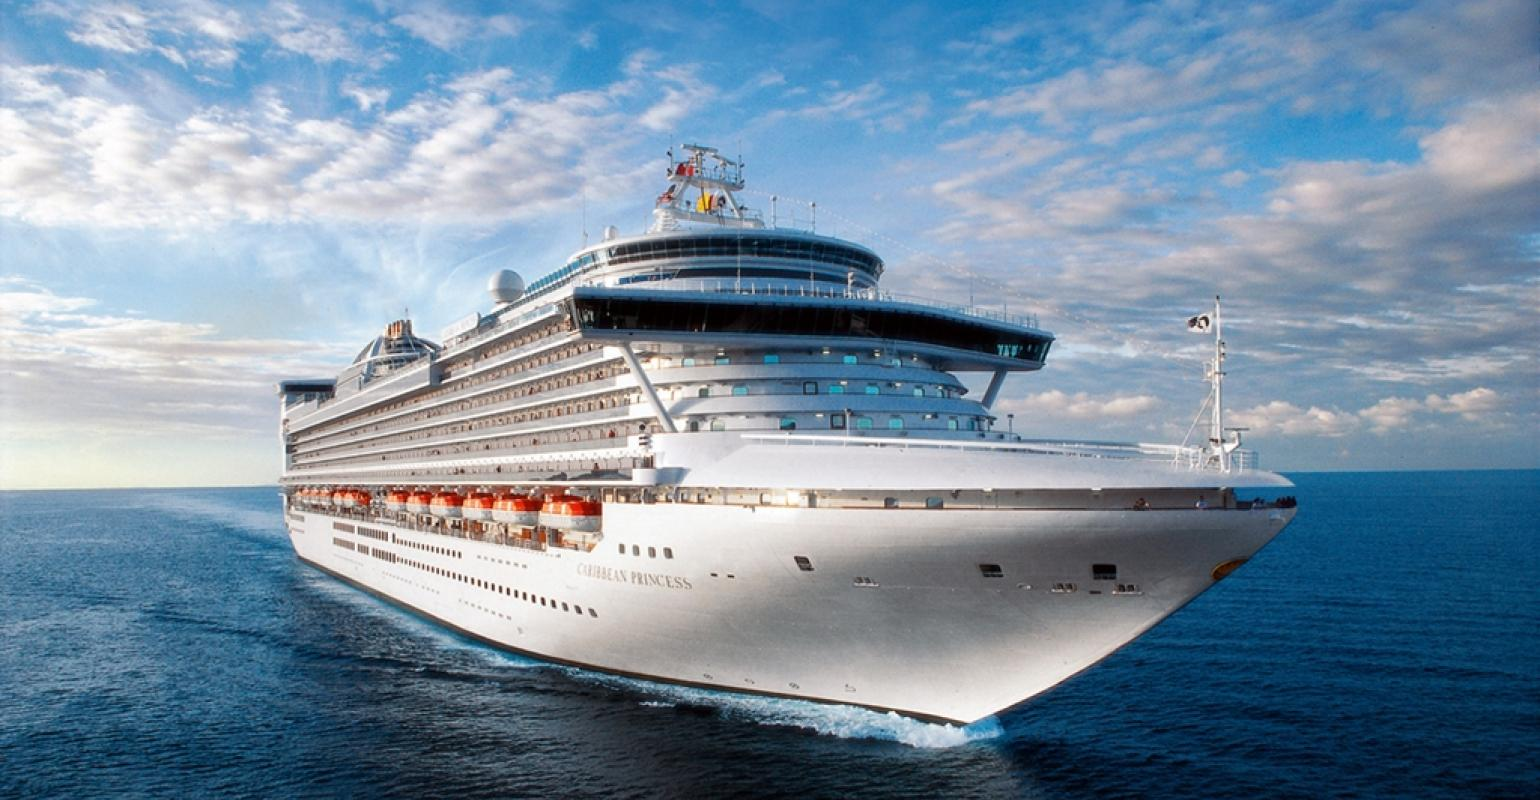 Cruise Lines Roll Out The Black Friday Cyber Monday Deals Seatrade Cruise Com